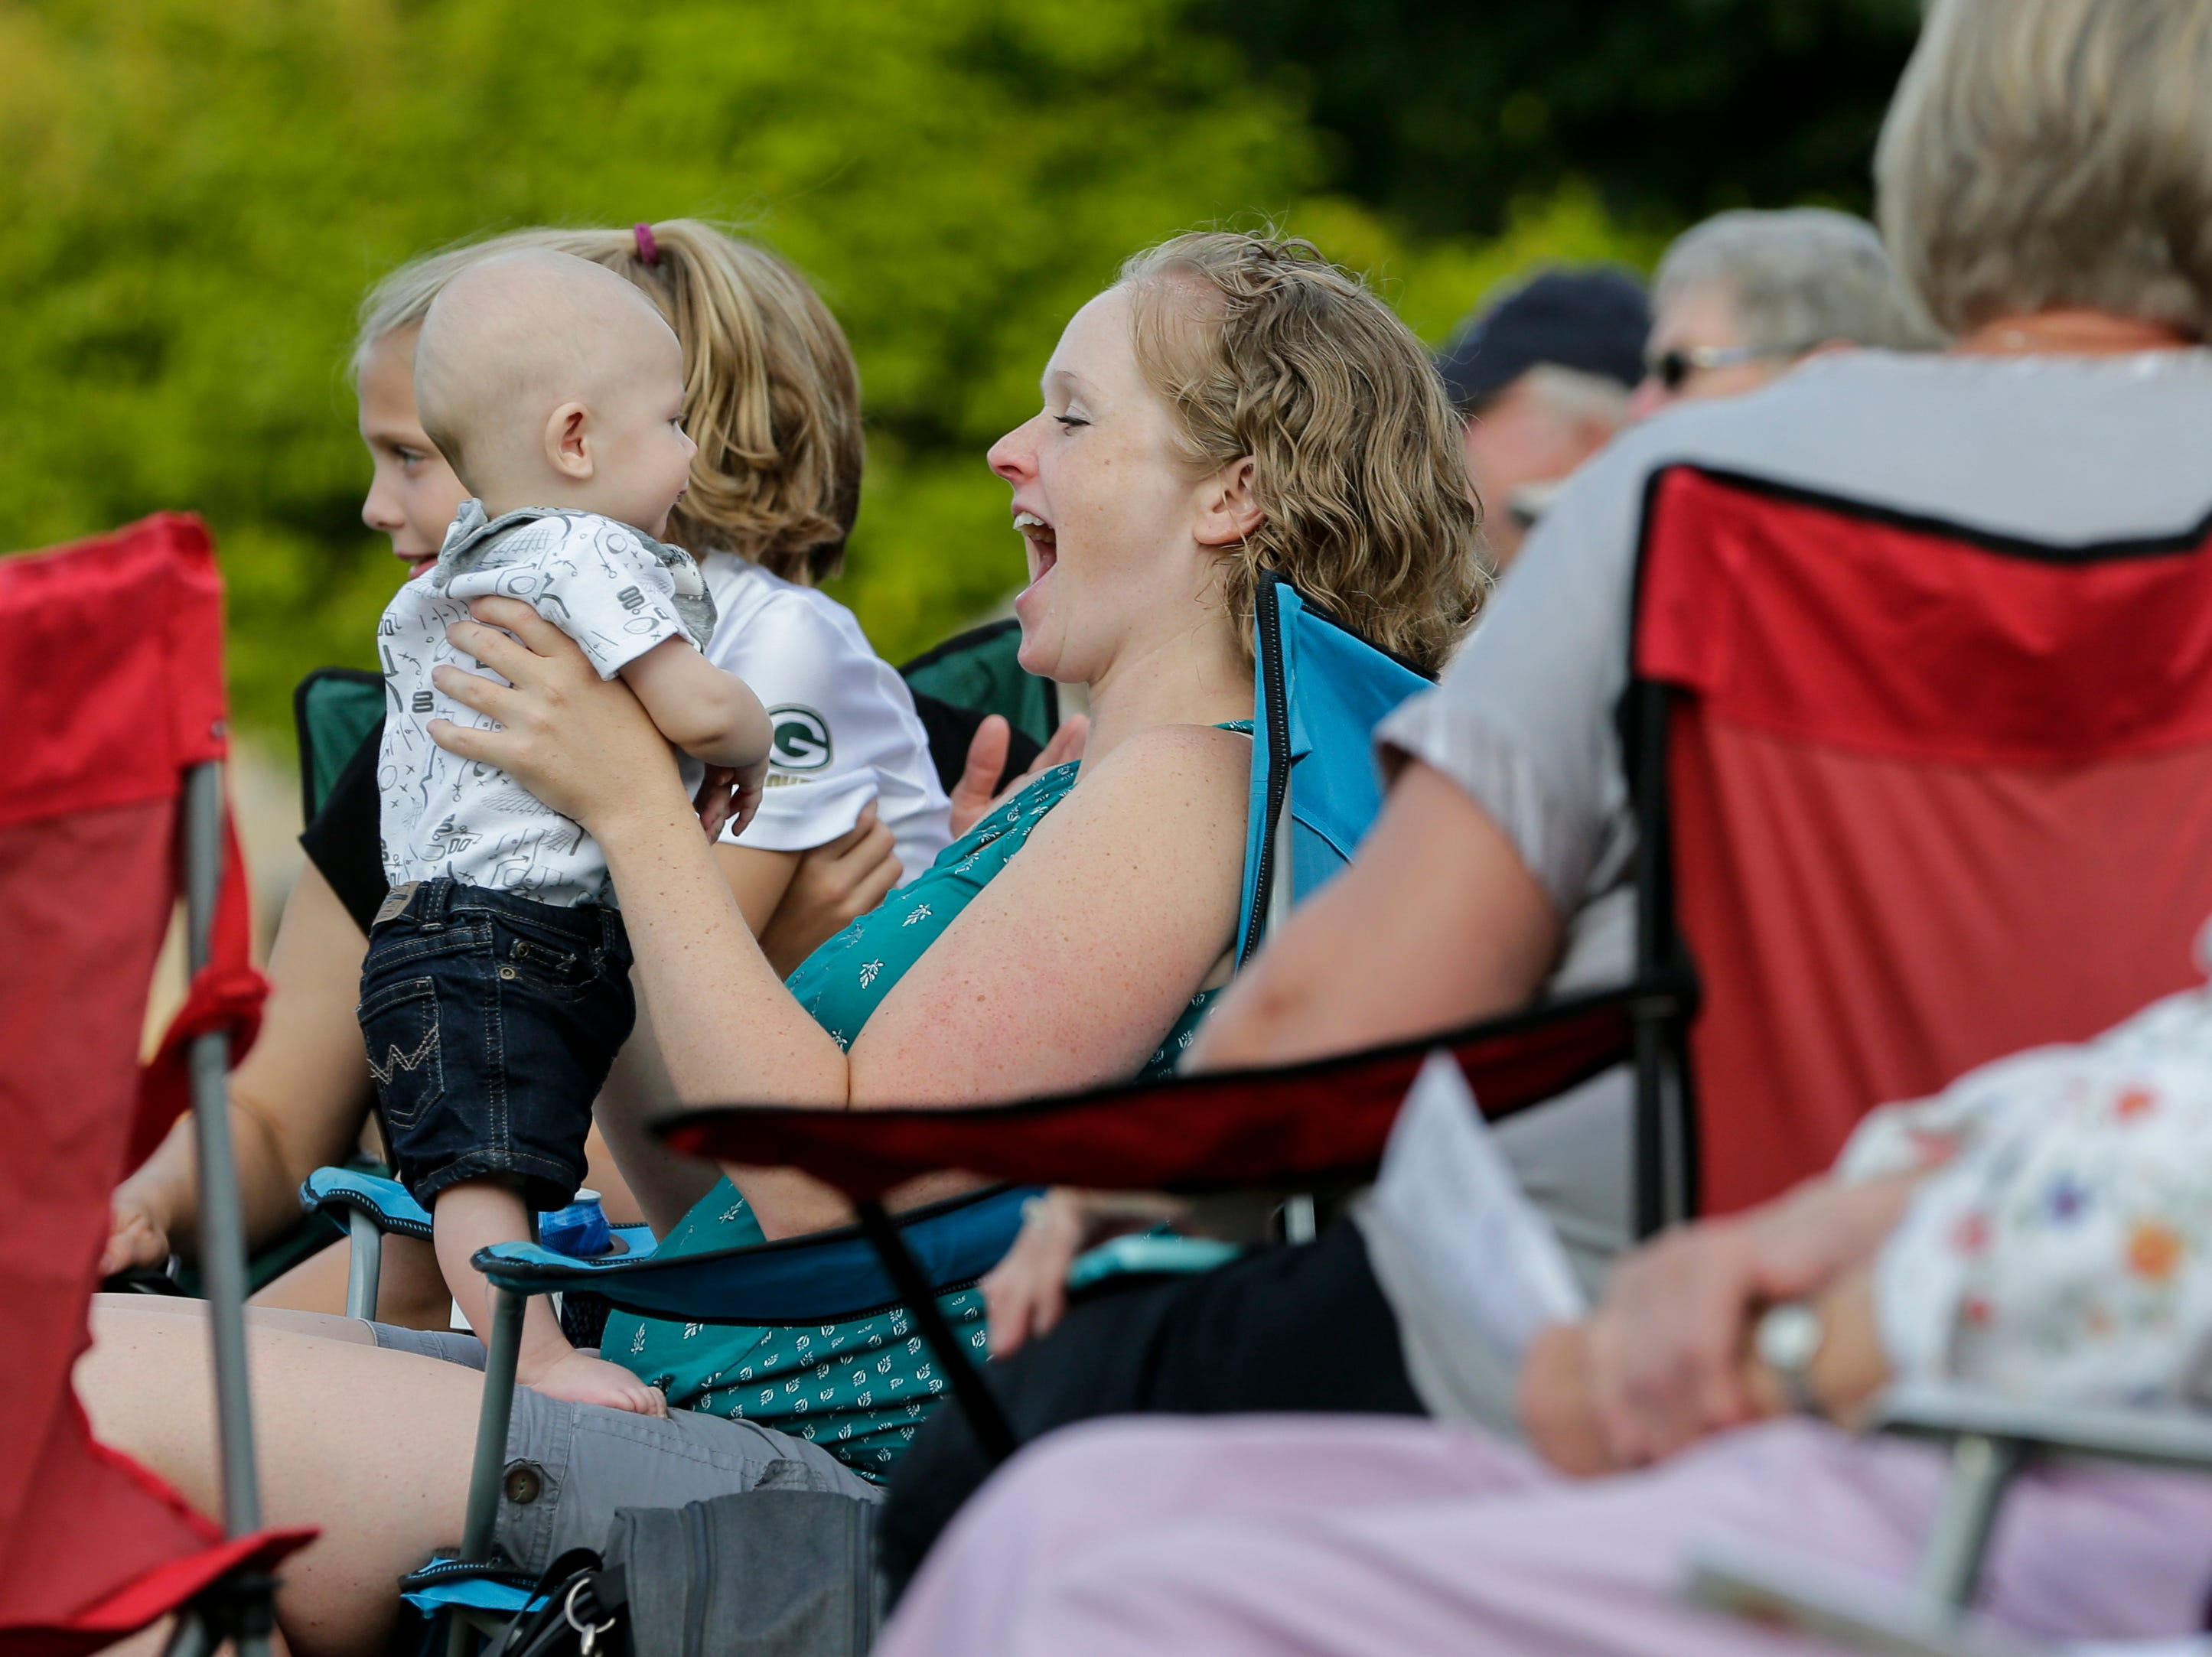 McKensie Vogel smiles at her little boy Easton, 1, as the Two Rivers Community Band plays their final concert of the season at Central Park Thursday, August 9, 2018, in Two Rivers, Wis. Josh Clark/USA TODAY NETWORK-Wisconsin